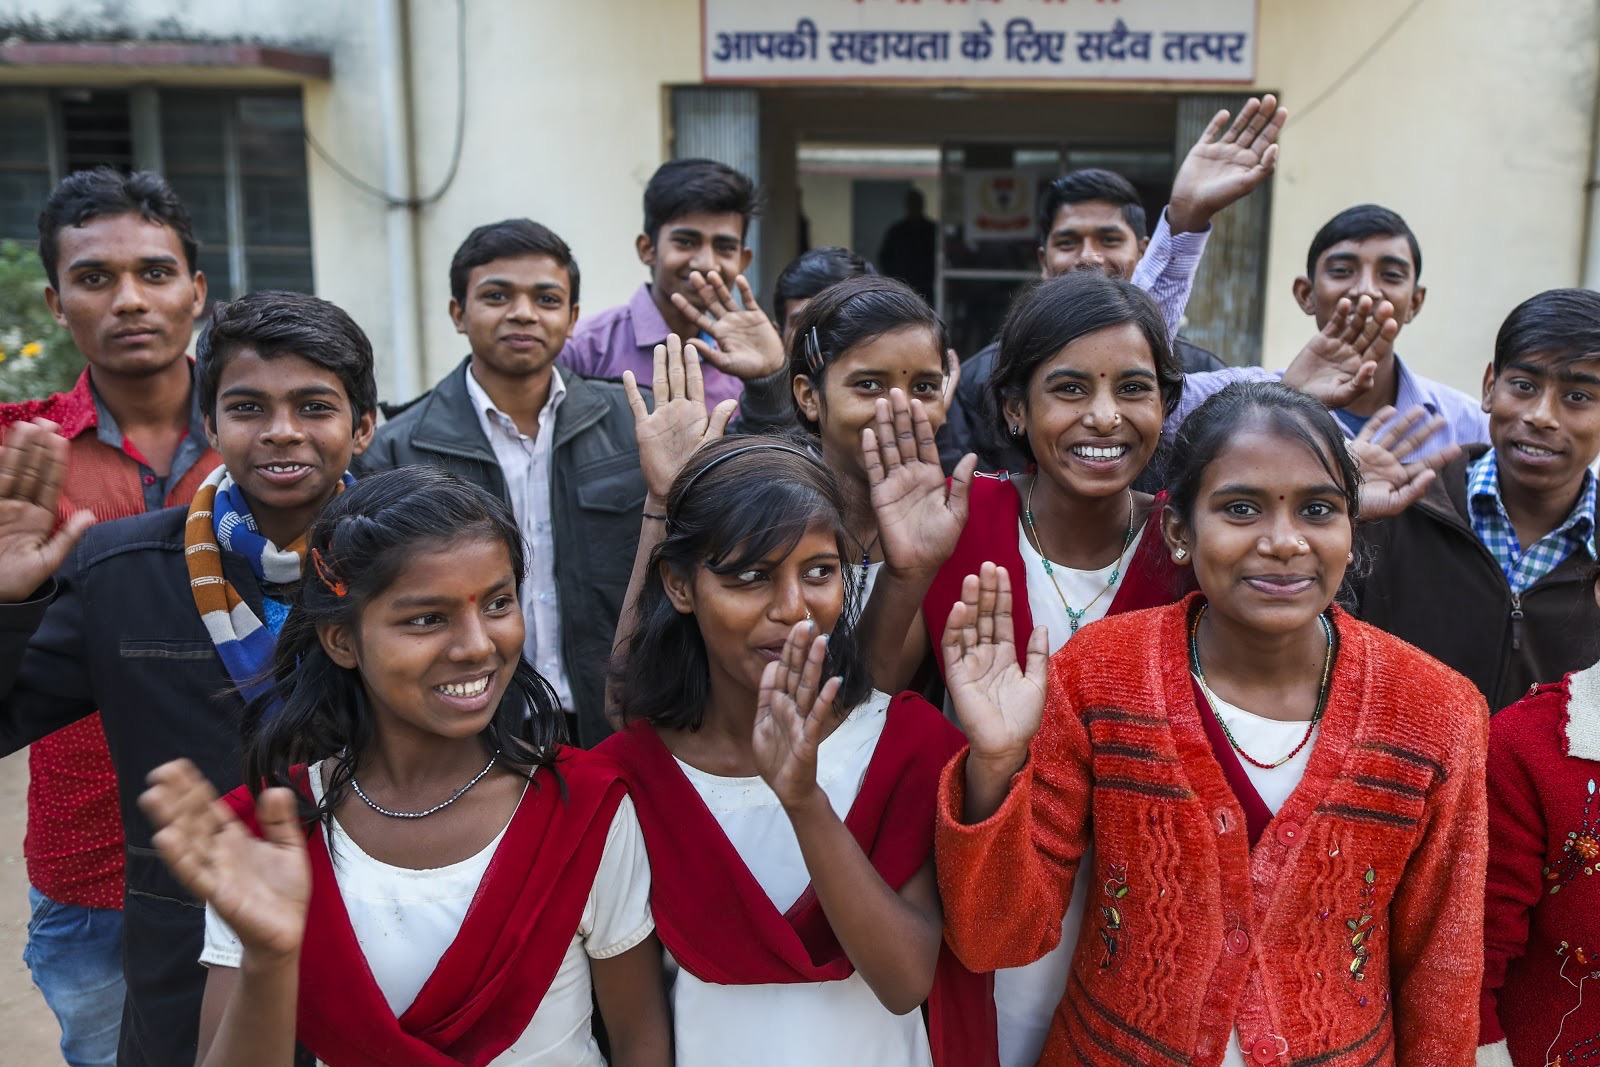 """Adolescent girls and boys group meet with police officers at """"Bal Mitra Koksh"""" to discuss issues regarding how to spread awareness of the evils of child marriage. (Source:  UNICEF  / Prashanth Vishwanathan)"""